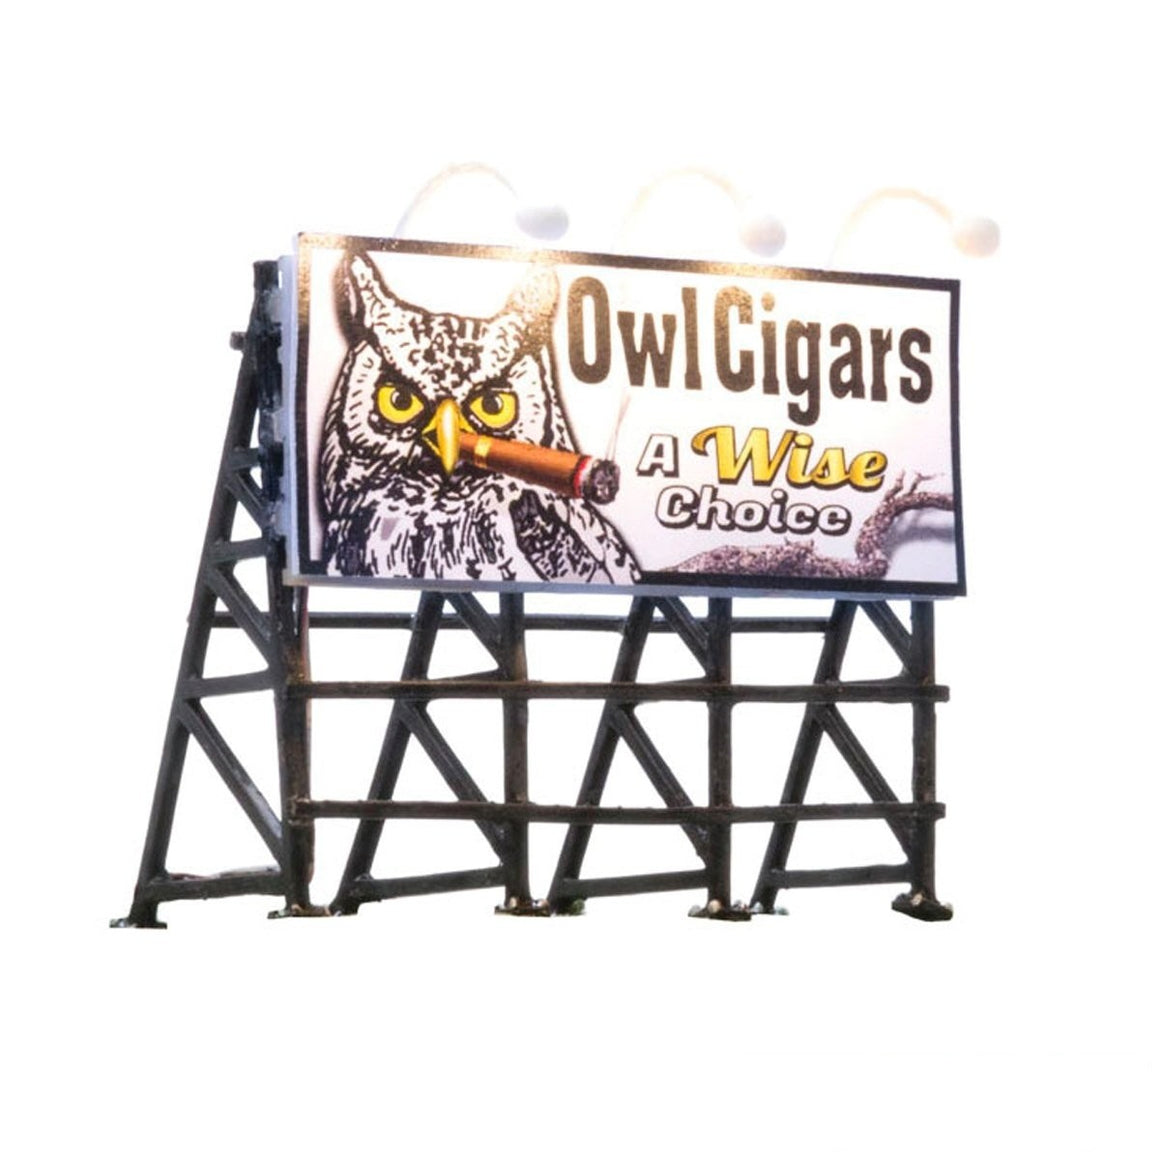 HO Scale: Just Plug® Lighted Billboard - Owl Cigars